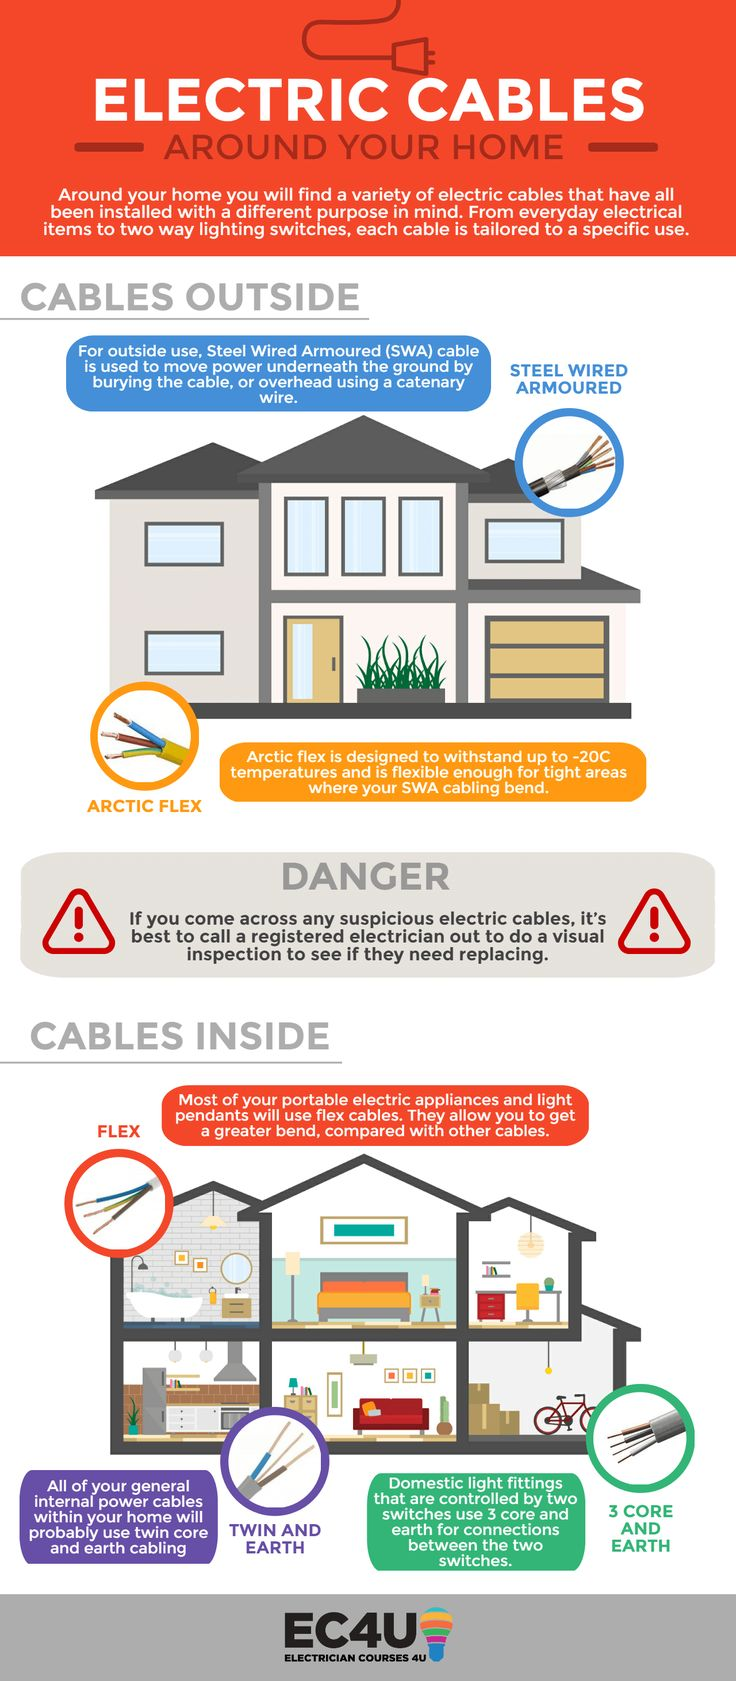 15 best Electrical Safety images on Pinterest   Electrical safety ...